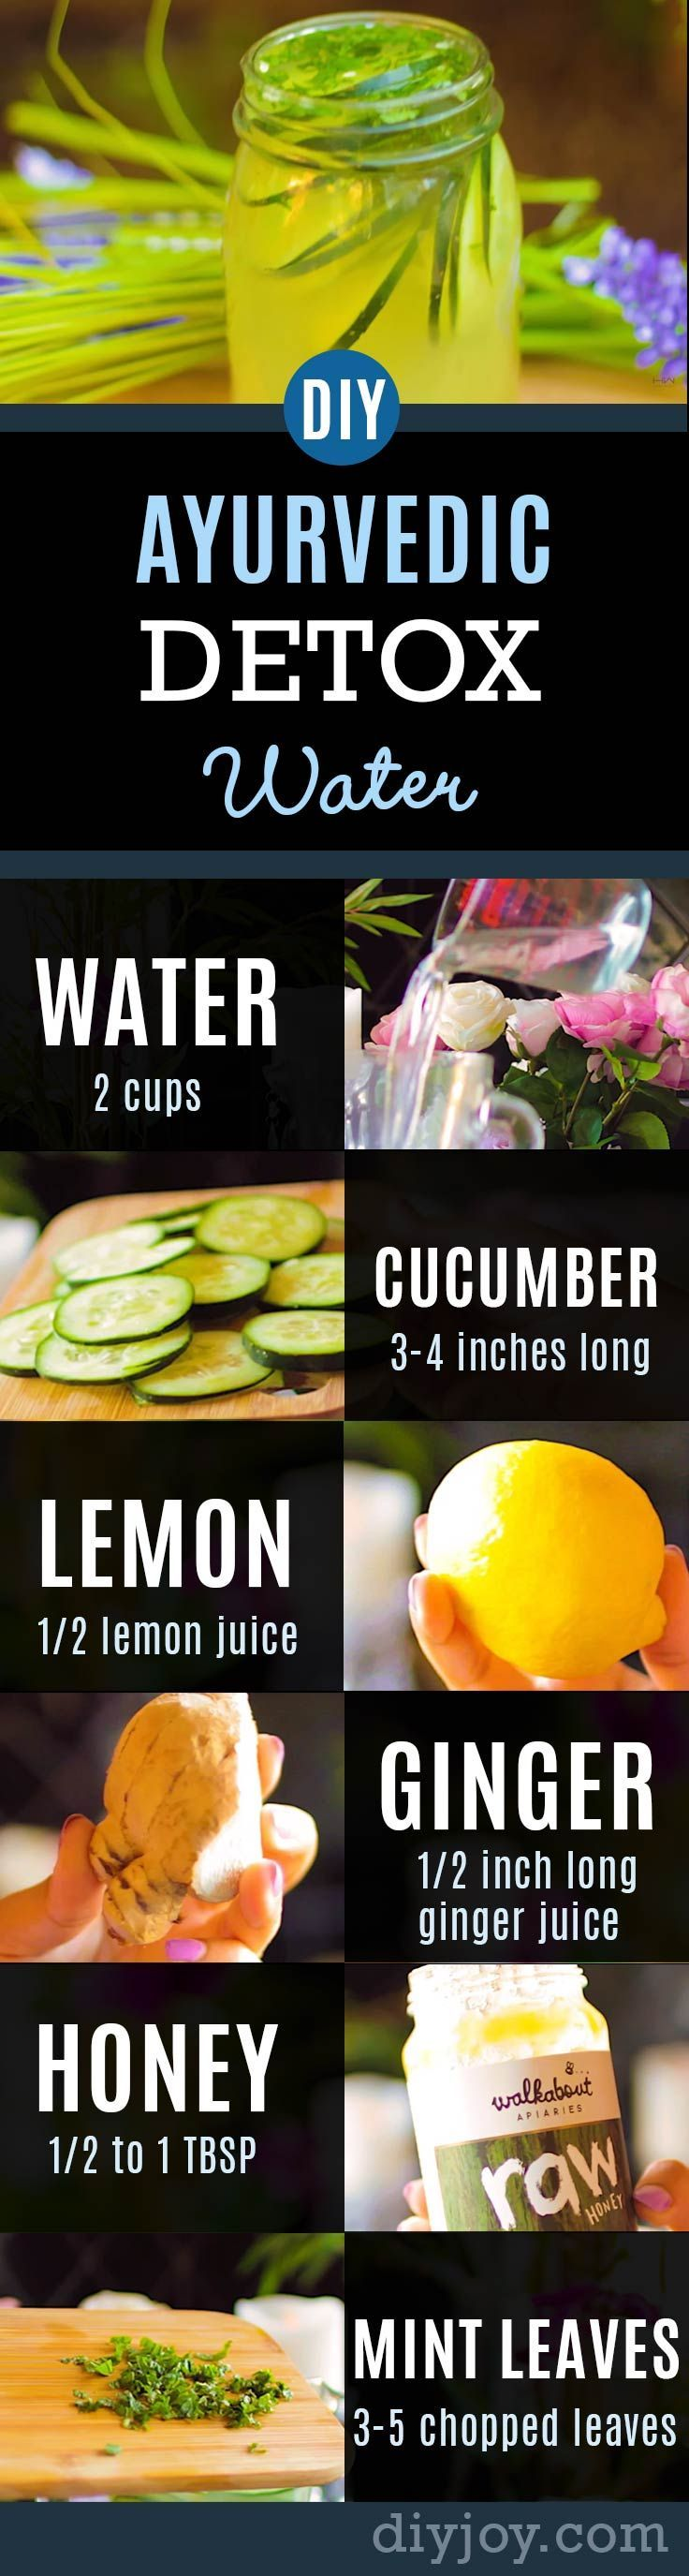 Ayurvedic Detox Water Recipe Promotes Healthy Body, Clear Skin, Weight Loss and Flat Belly, Anti-Aging | Healthy Recipes by DIY Joy Crafts http://diyjoy.com/ayurvedic-detox-water-weight-loss-anti-aging-recipe